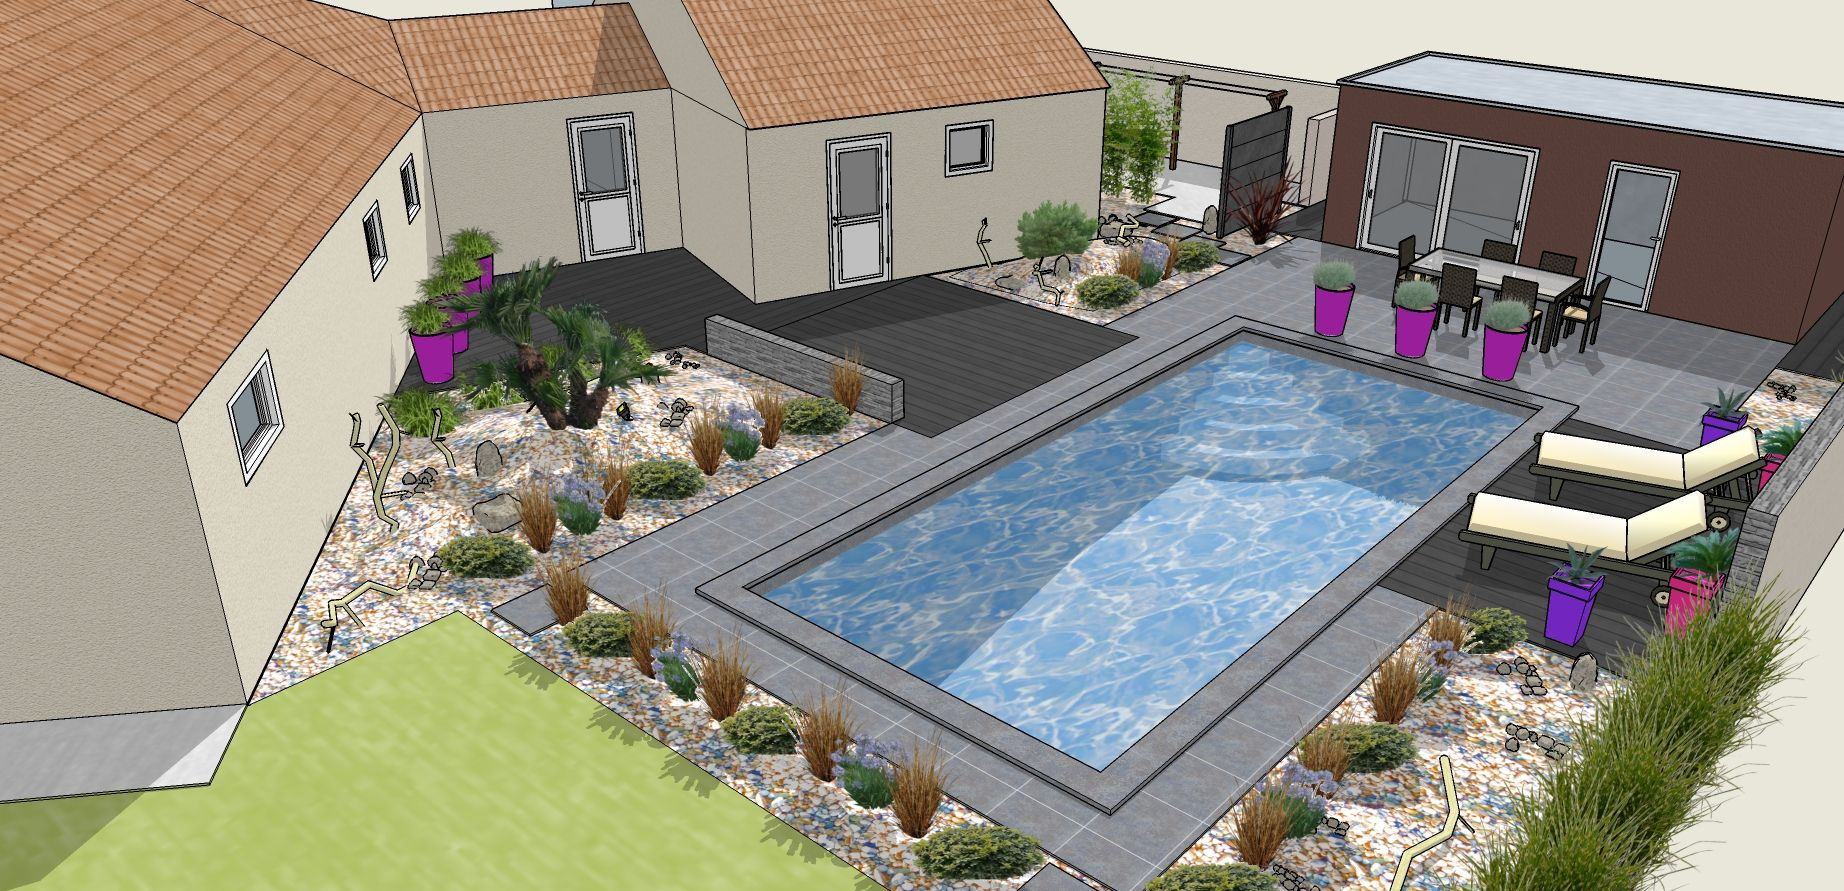 Am nagement paysager piscine creus e contemporain for Creation de jardin exterieur